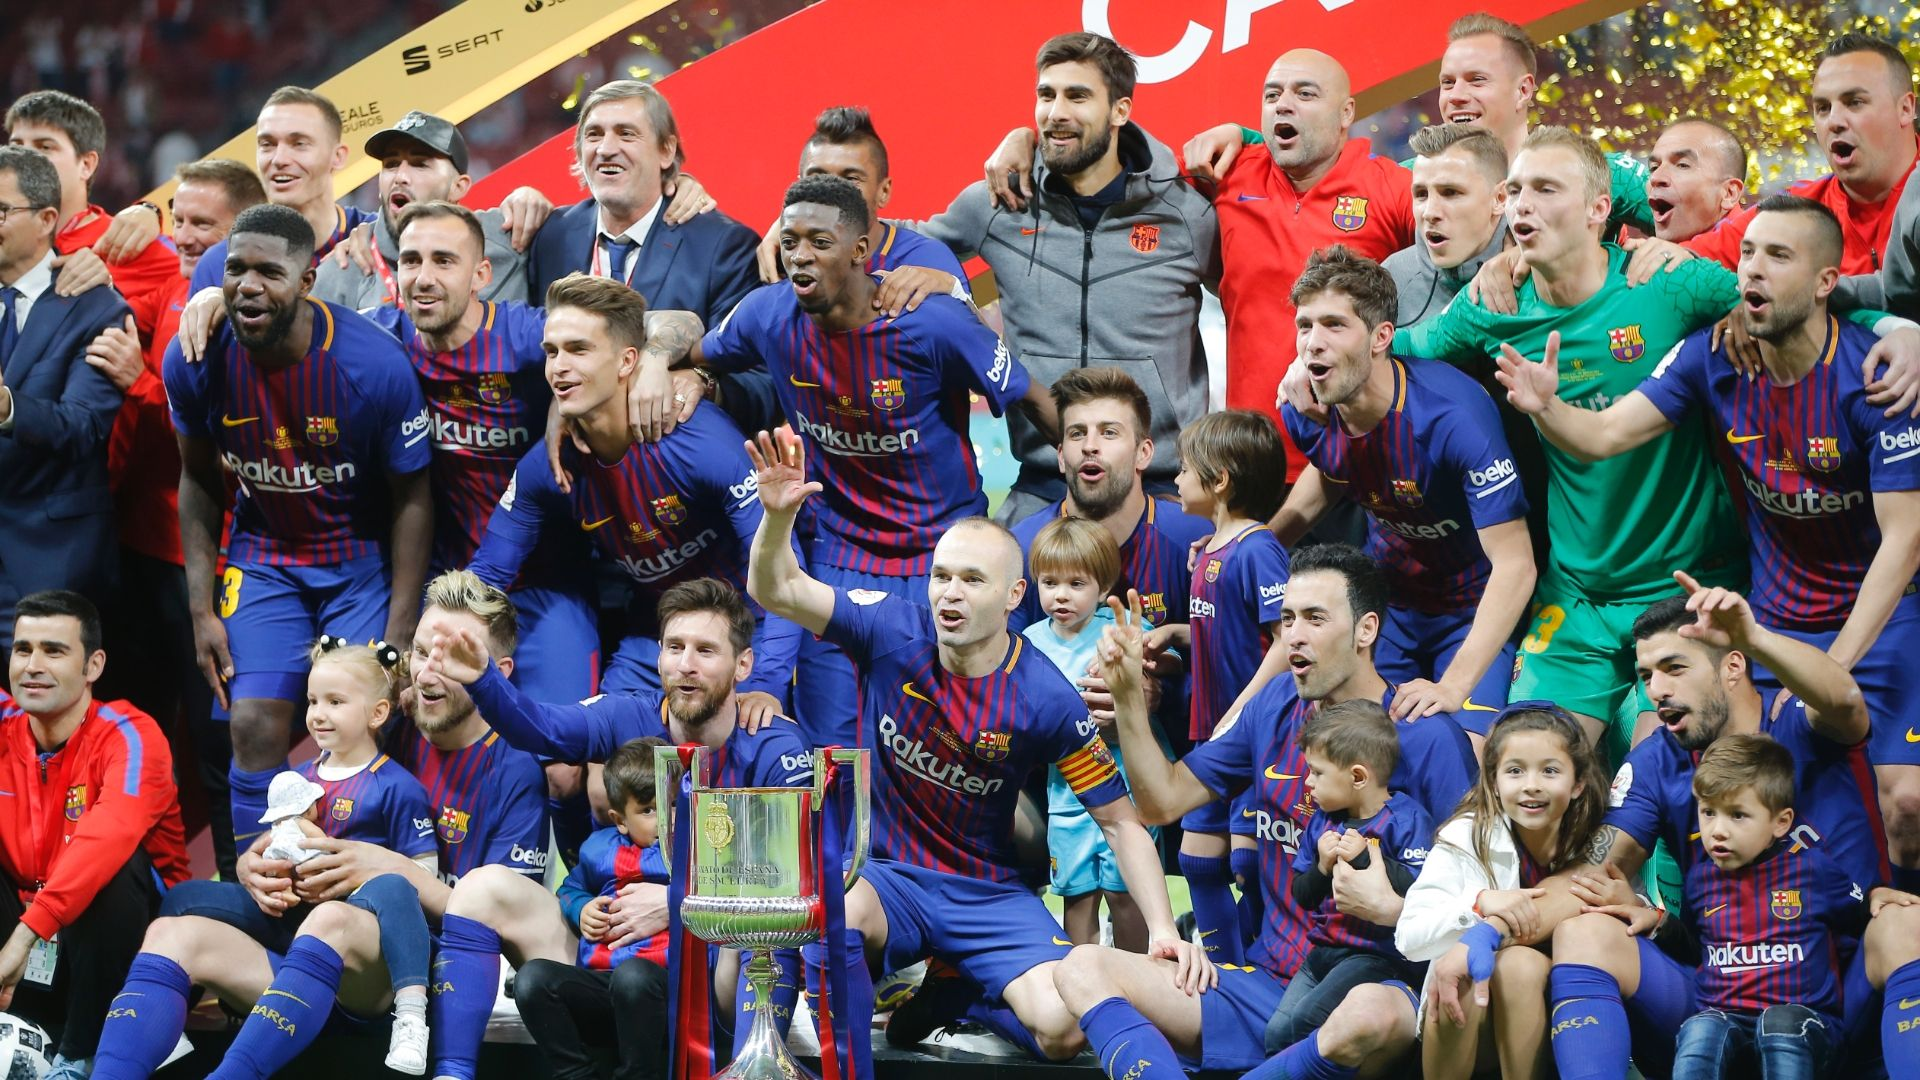 Iniesta's show-stealing Copa del Rey final tops Power Ranking